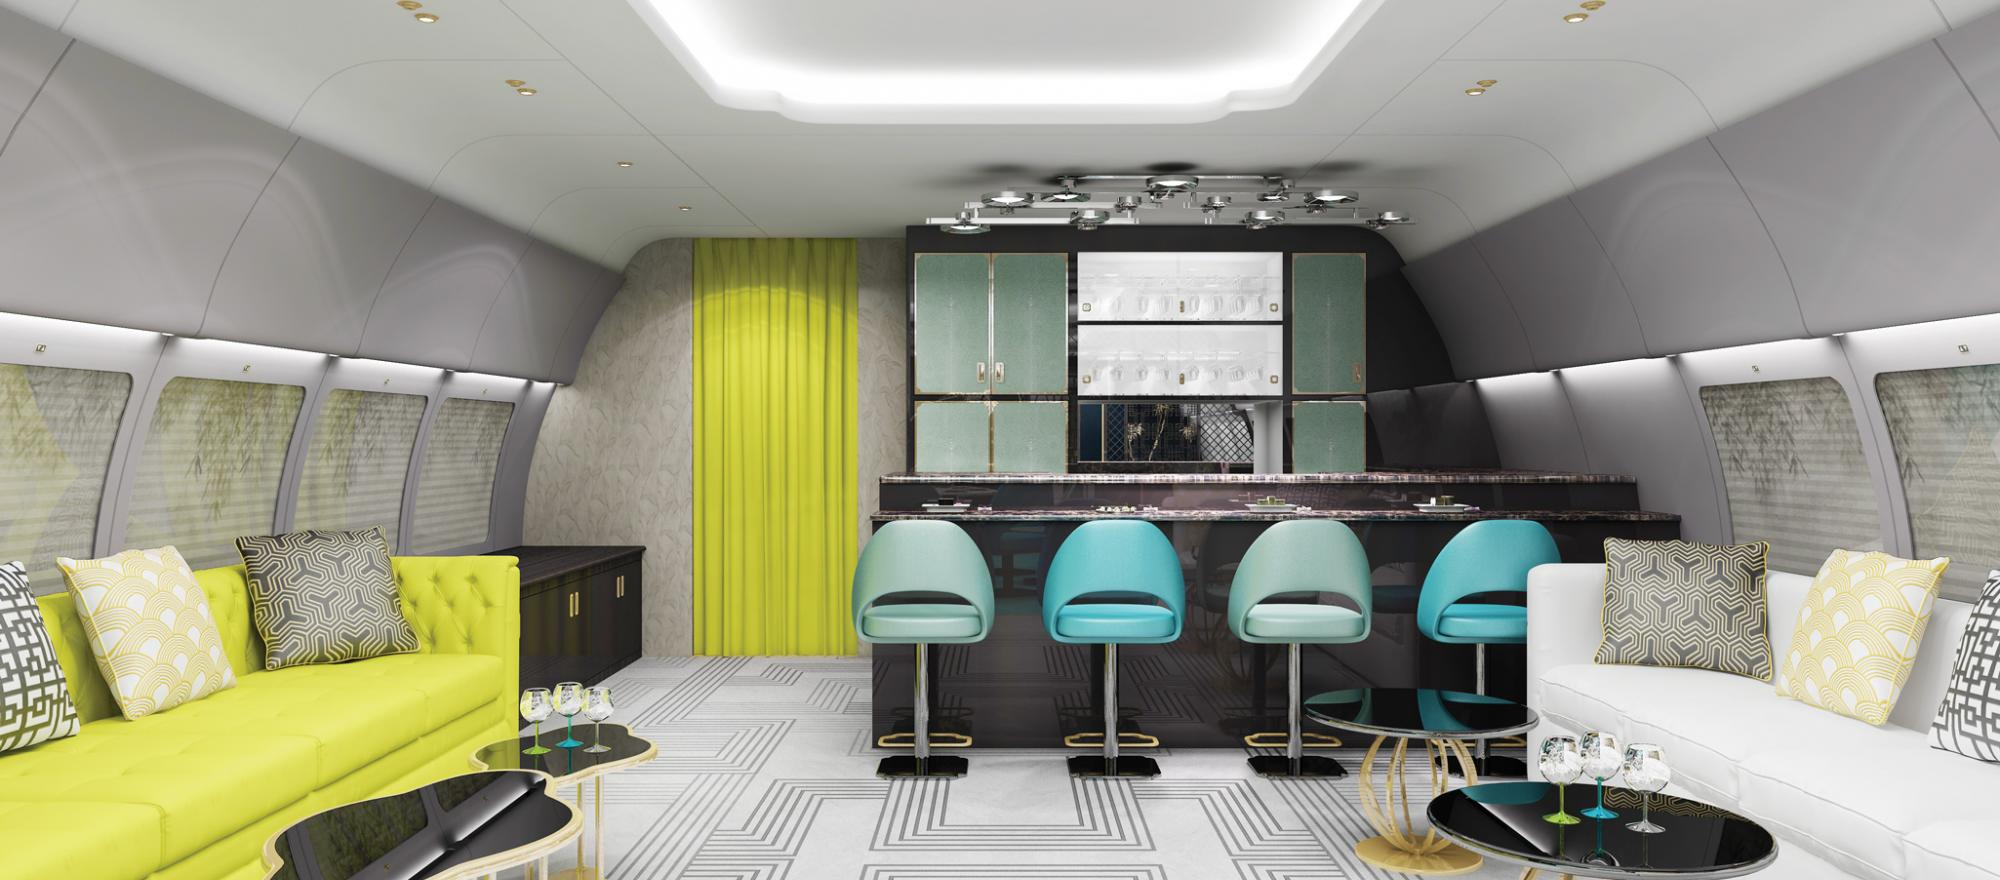 Haeco Aircraft Engineering has created this cabin with a sushi bar.